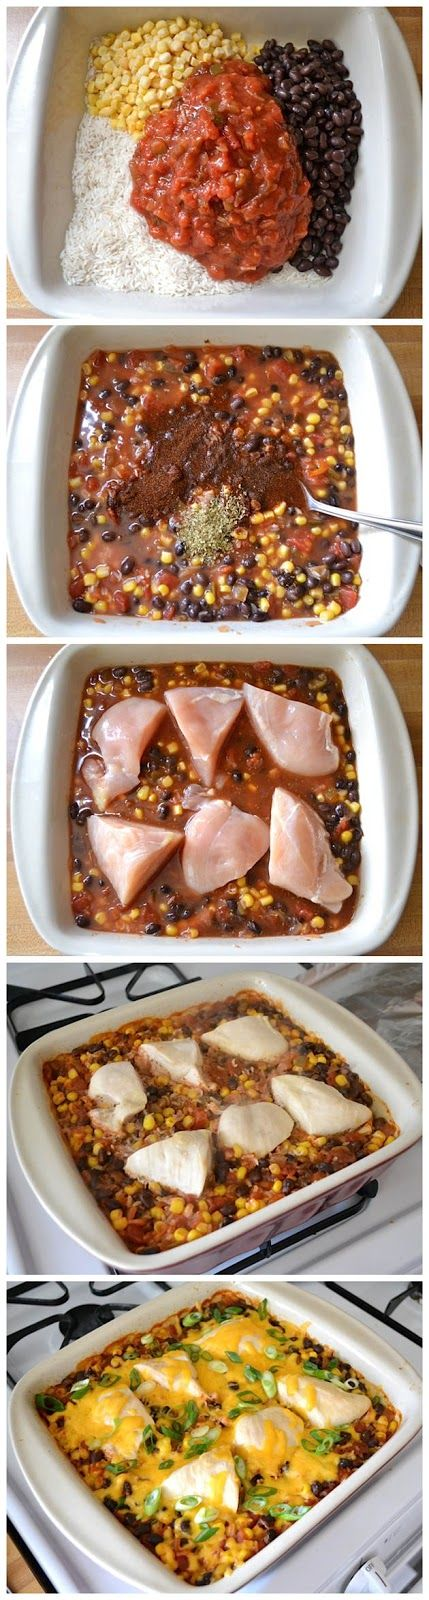 salsa chicken casserole: I definitely want to try